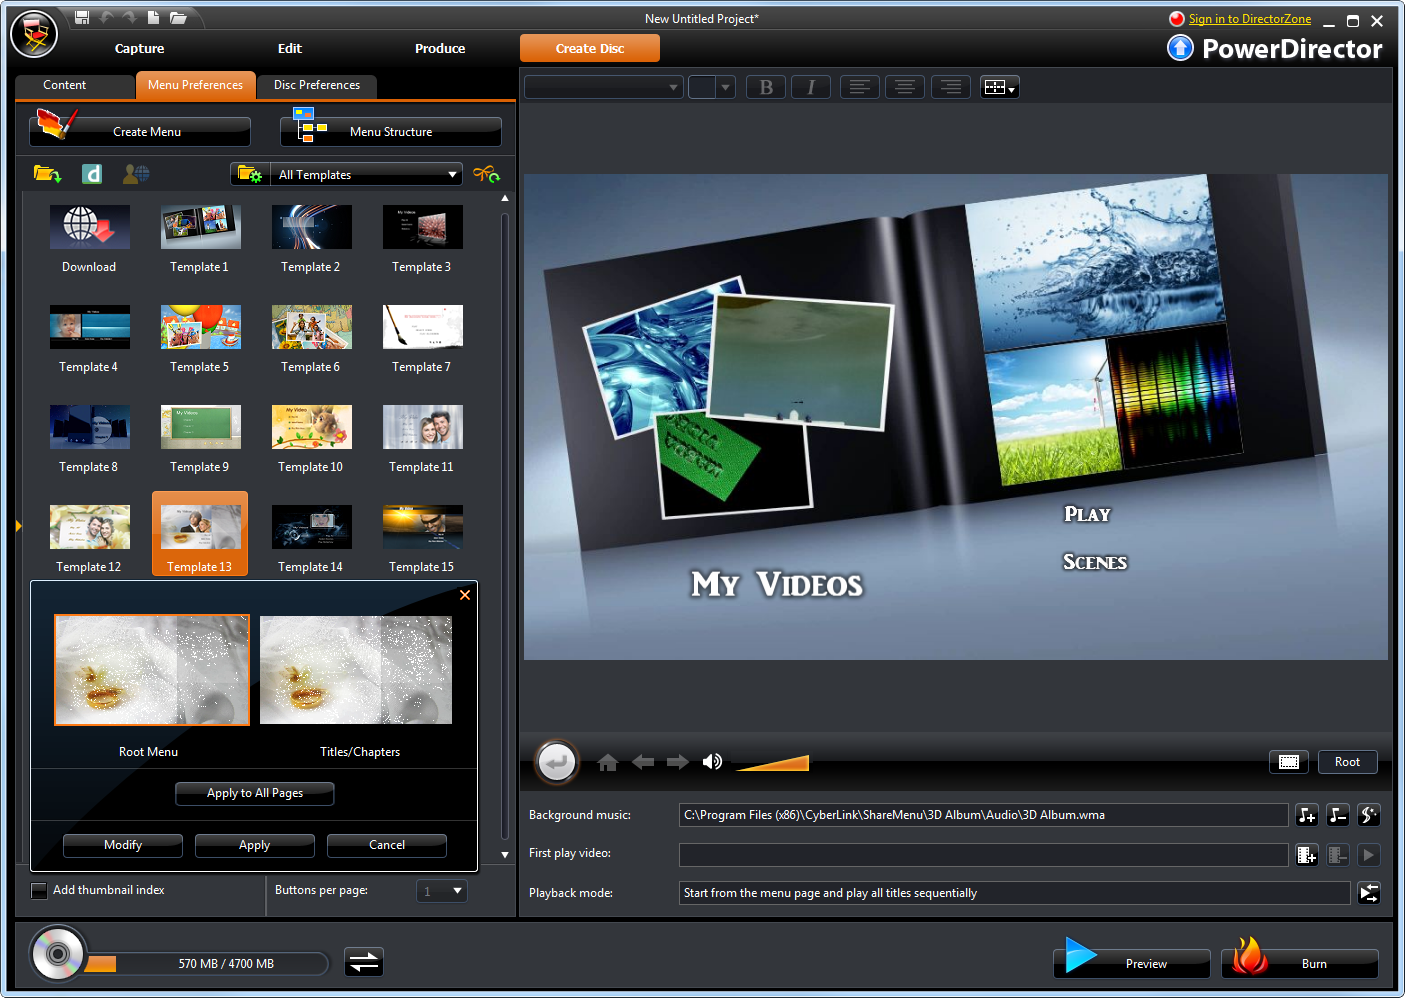 powerdirector dvd menu templates cyberlink v nero media authoring suites the register